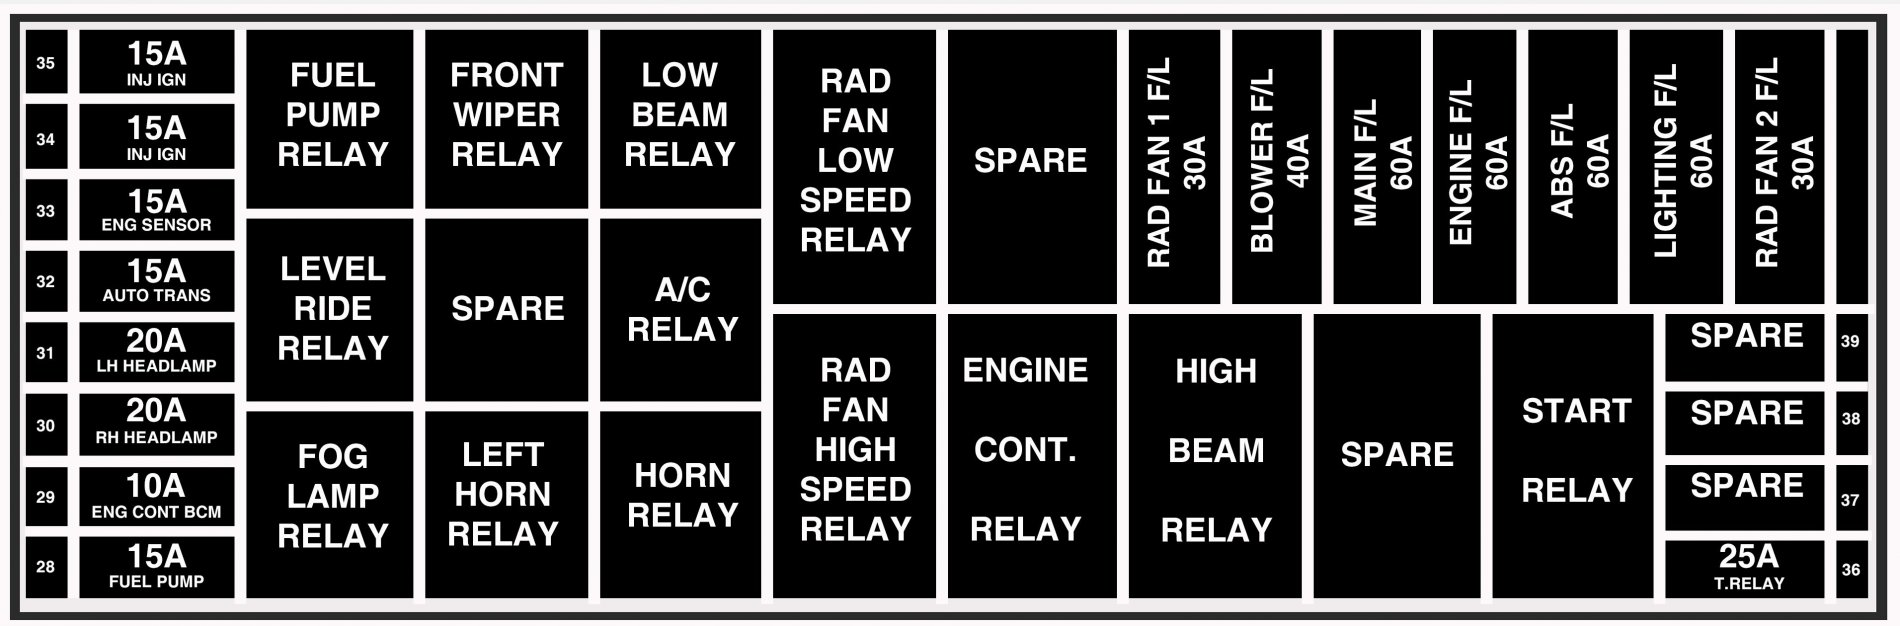 fuse and relay layout dilema just commodores  holden commodore ls1 electric fan mod